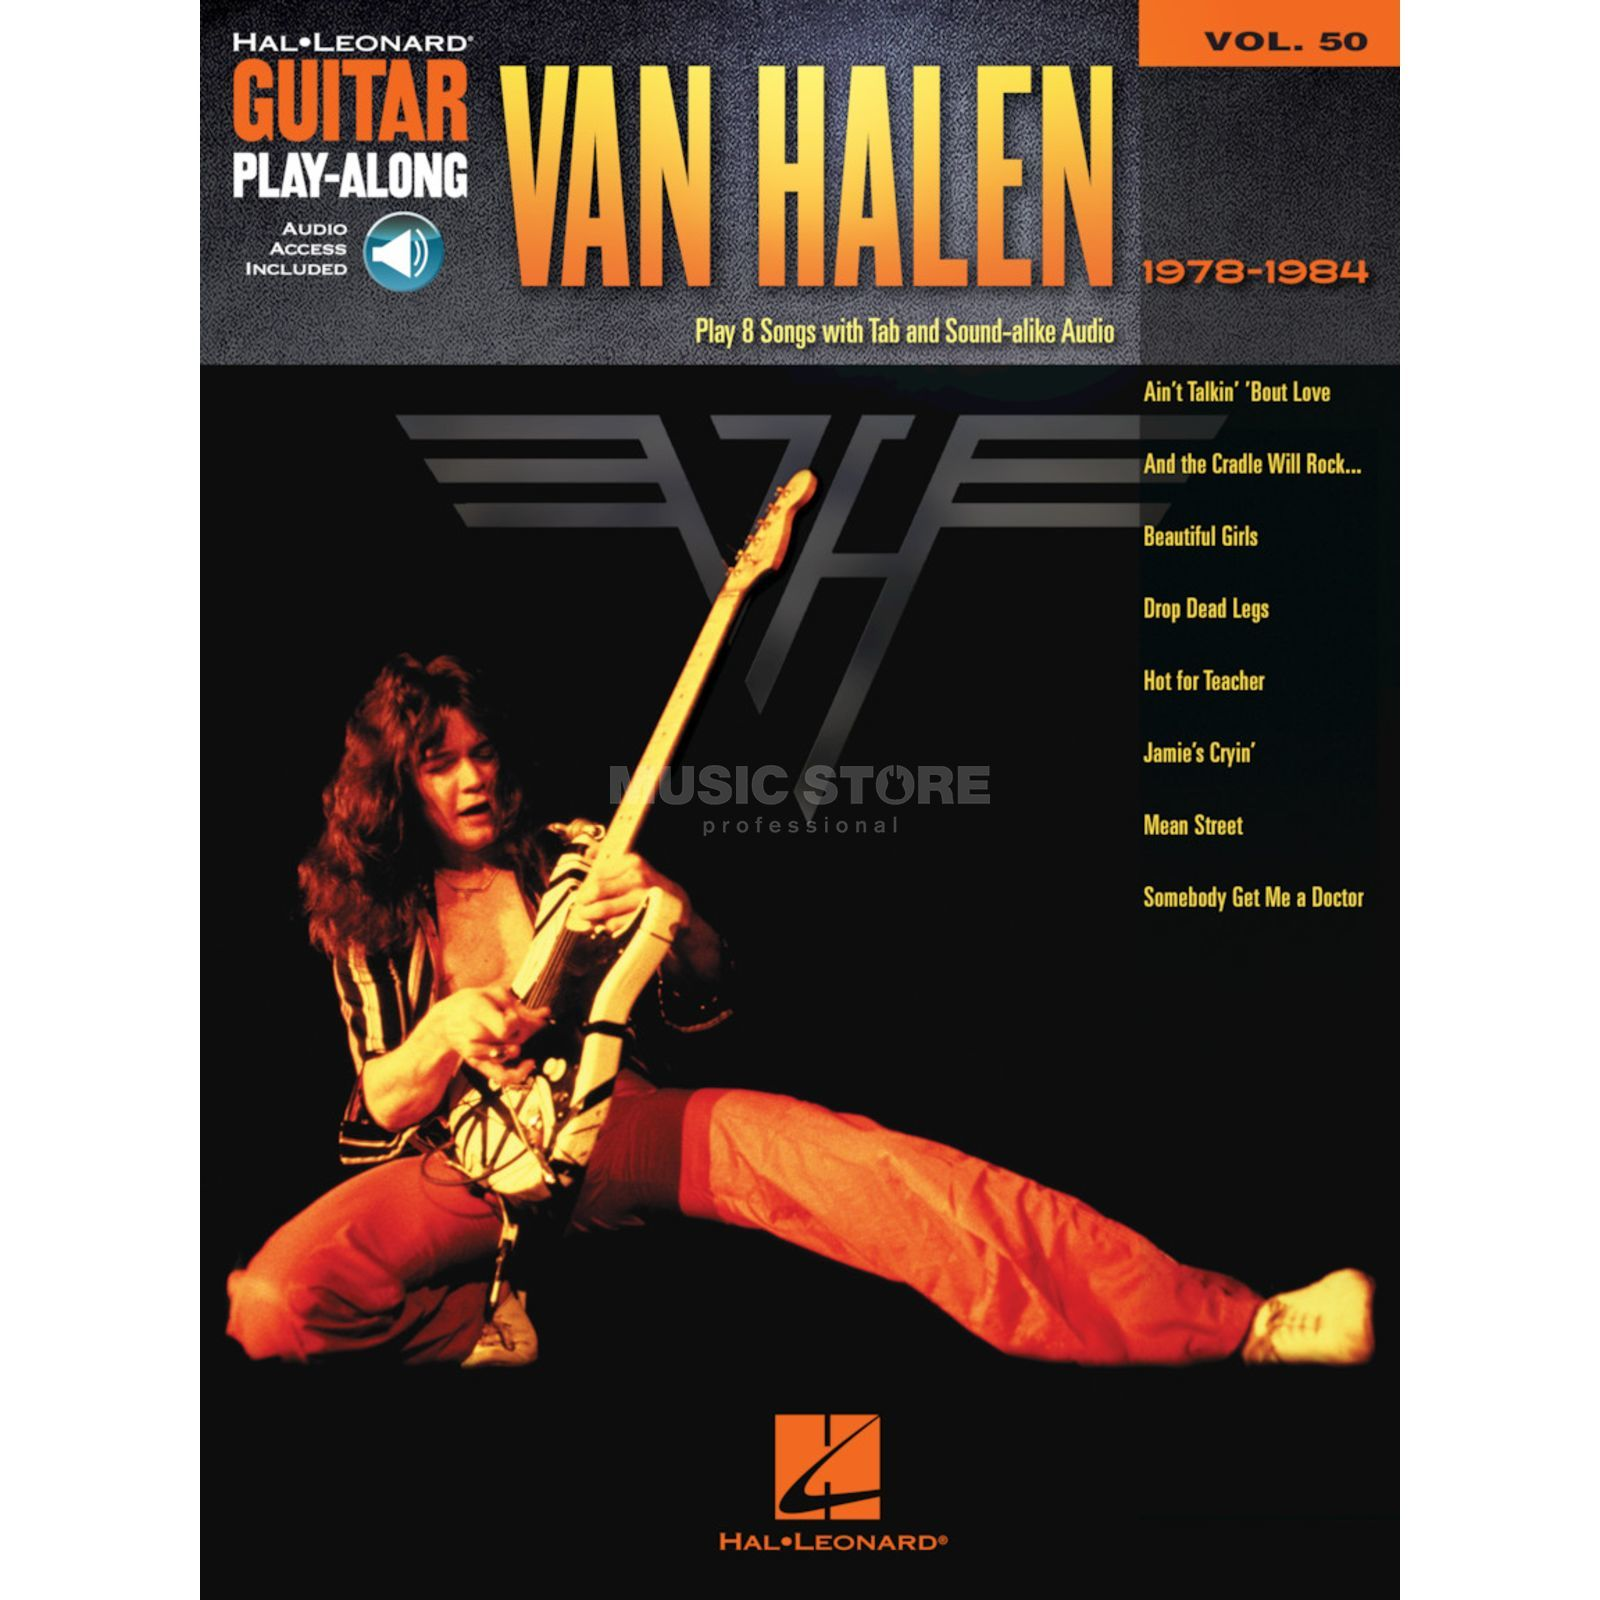 Hal Leonard Guitar Play-Along: Van Halen 1978-1984 Vol. 50, TAB und CD Produktbillede